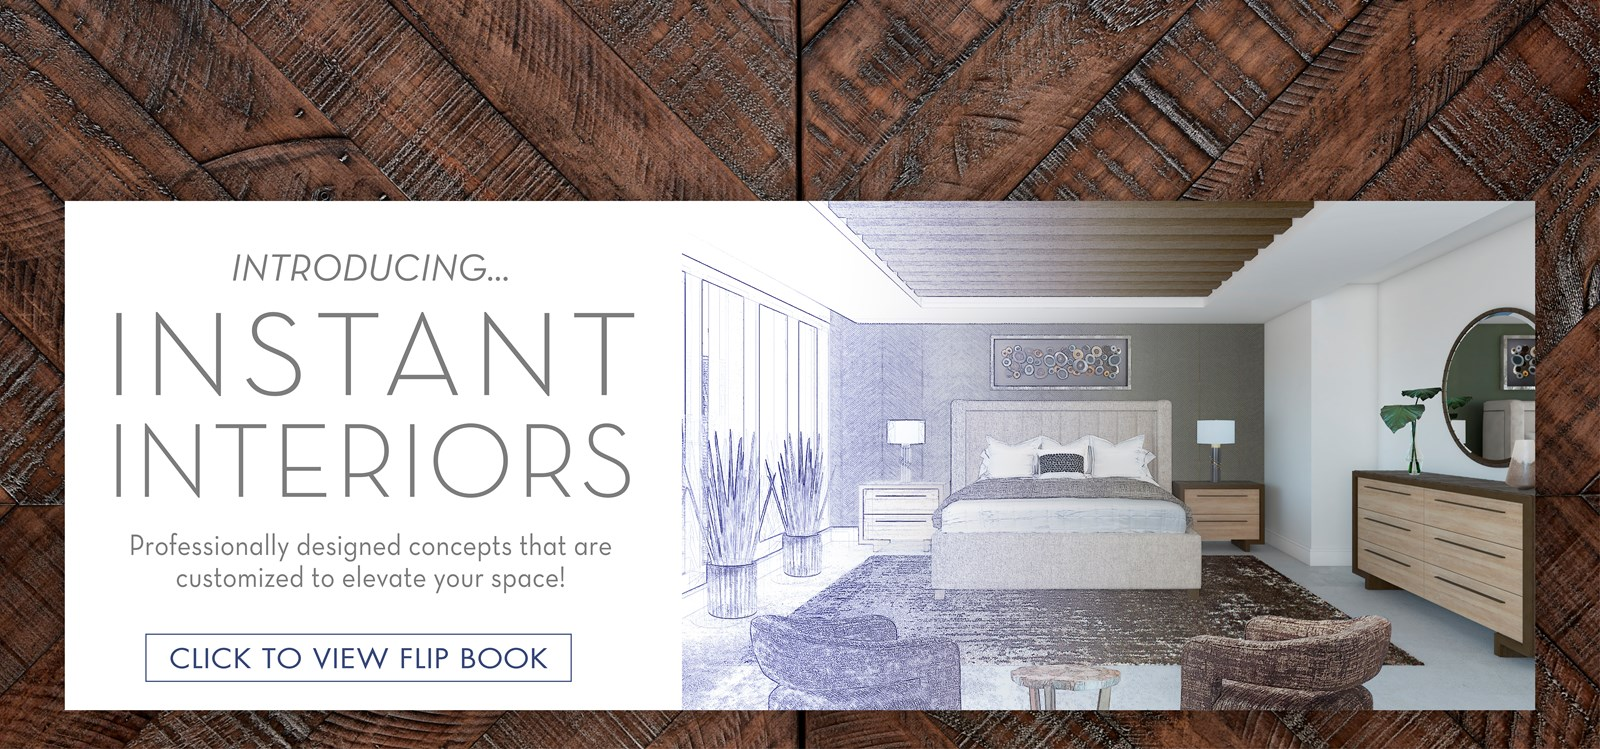 Image of the Miranda Collection Bedroom turning from sketch into rendering image. Text: Introducing... Instant Interiors. Professionally designed concepts that are customized to elevate your space! Click to view Flip Book. Links to Instant Interiors Flip Book.